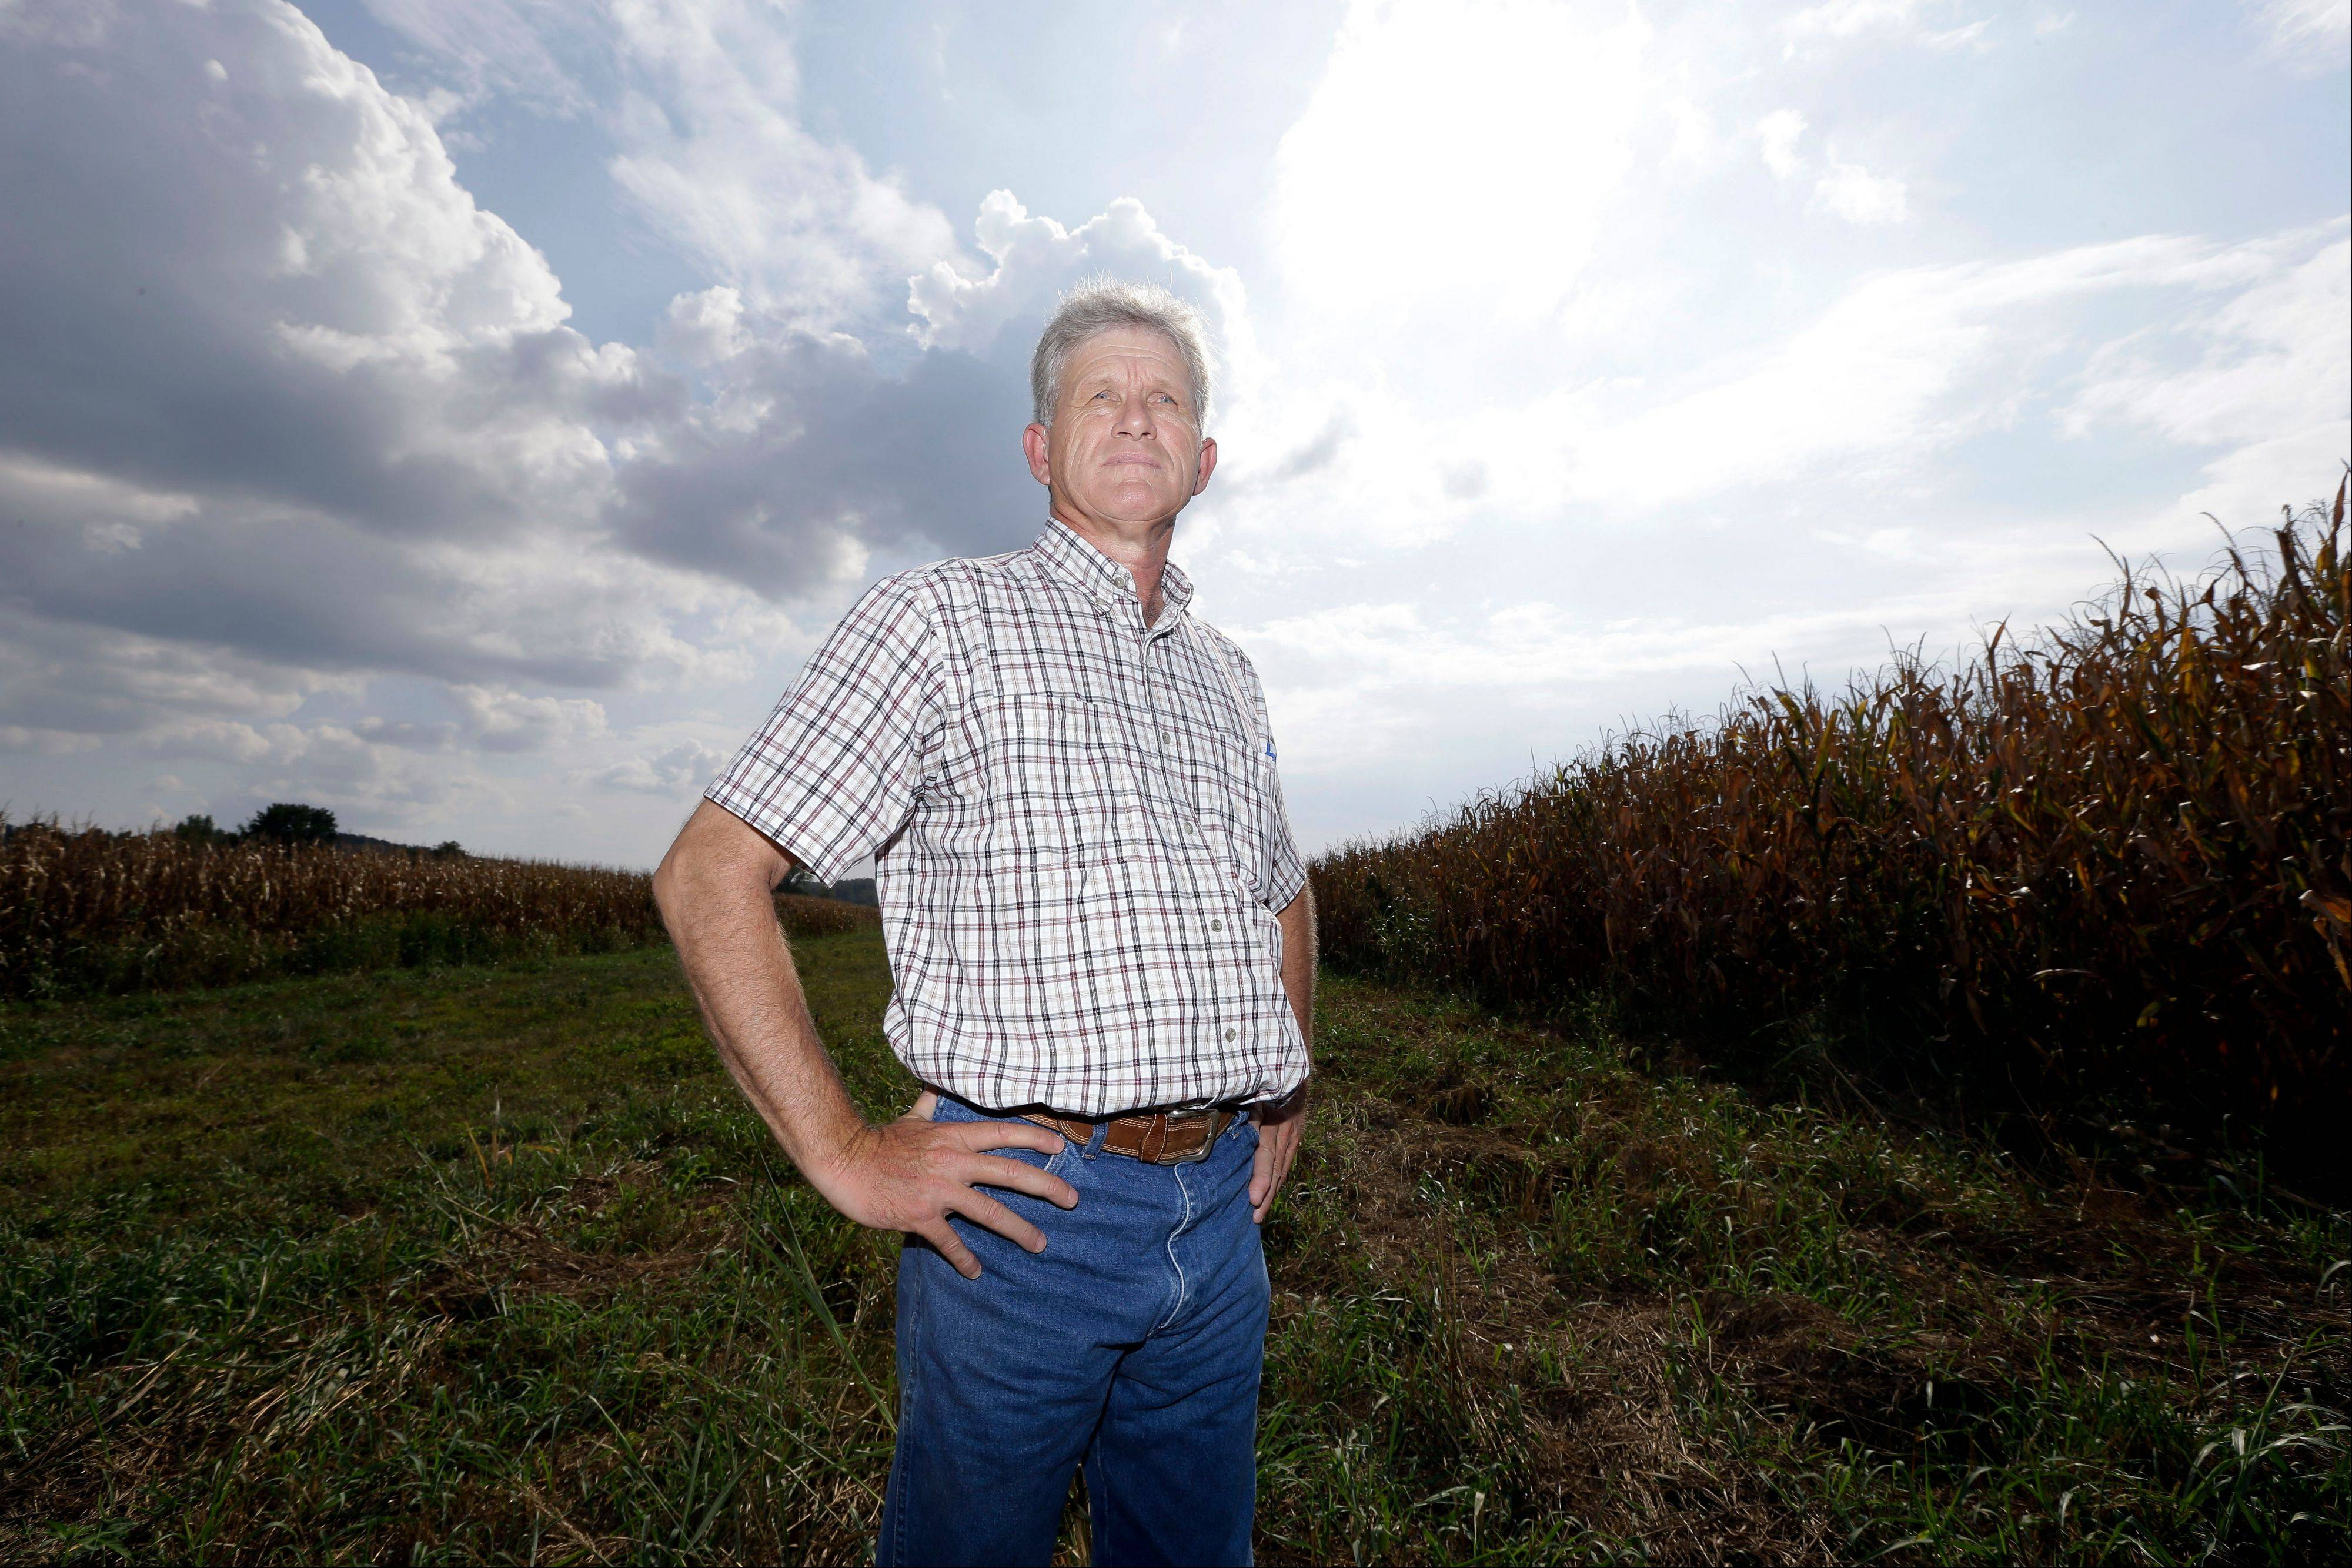 Mark Cansler in a field on his family farm near Hopkinsville, Ky. Cansler expects visitors to fields like his to observe the next total eclipse of the sun visible from the United States on Aug. 21, 2017. The afternoon event will last longer in a rural stretch near Hopkinsville than any place on the planet.